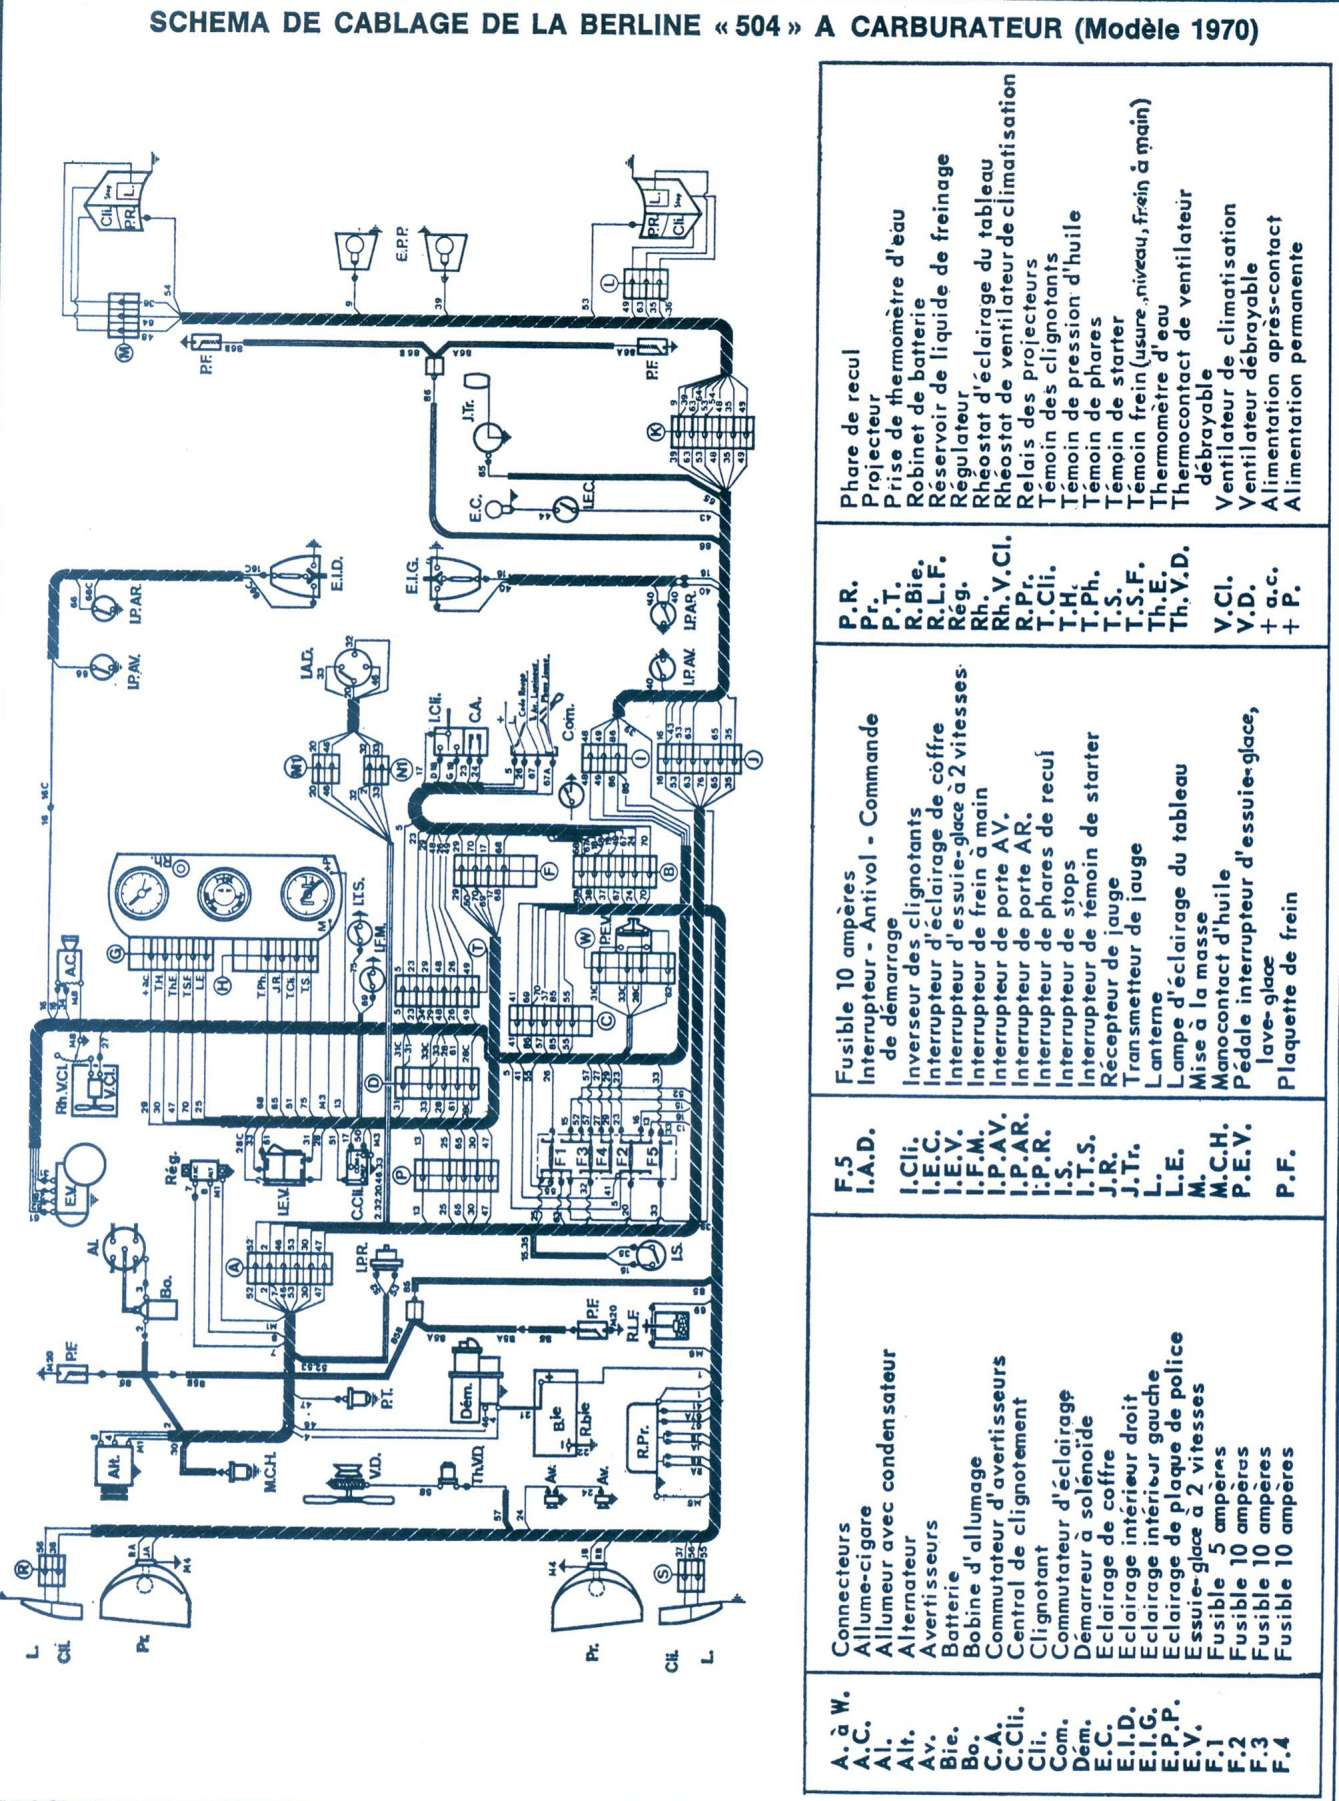 hight resolution of peugeot 504 wiring diagram simple wiring schema peugeot 104 wiring diagram peugeot 505 gr